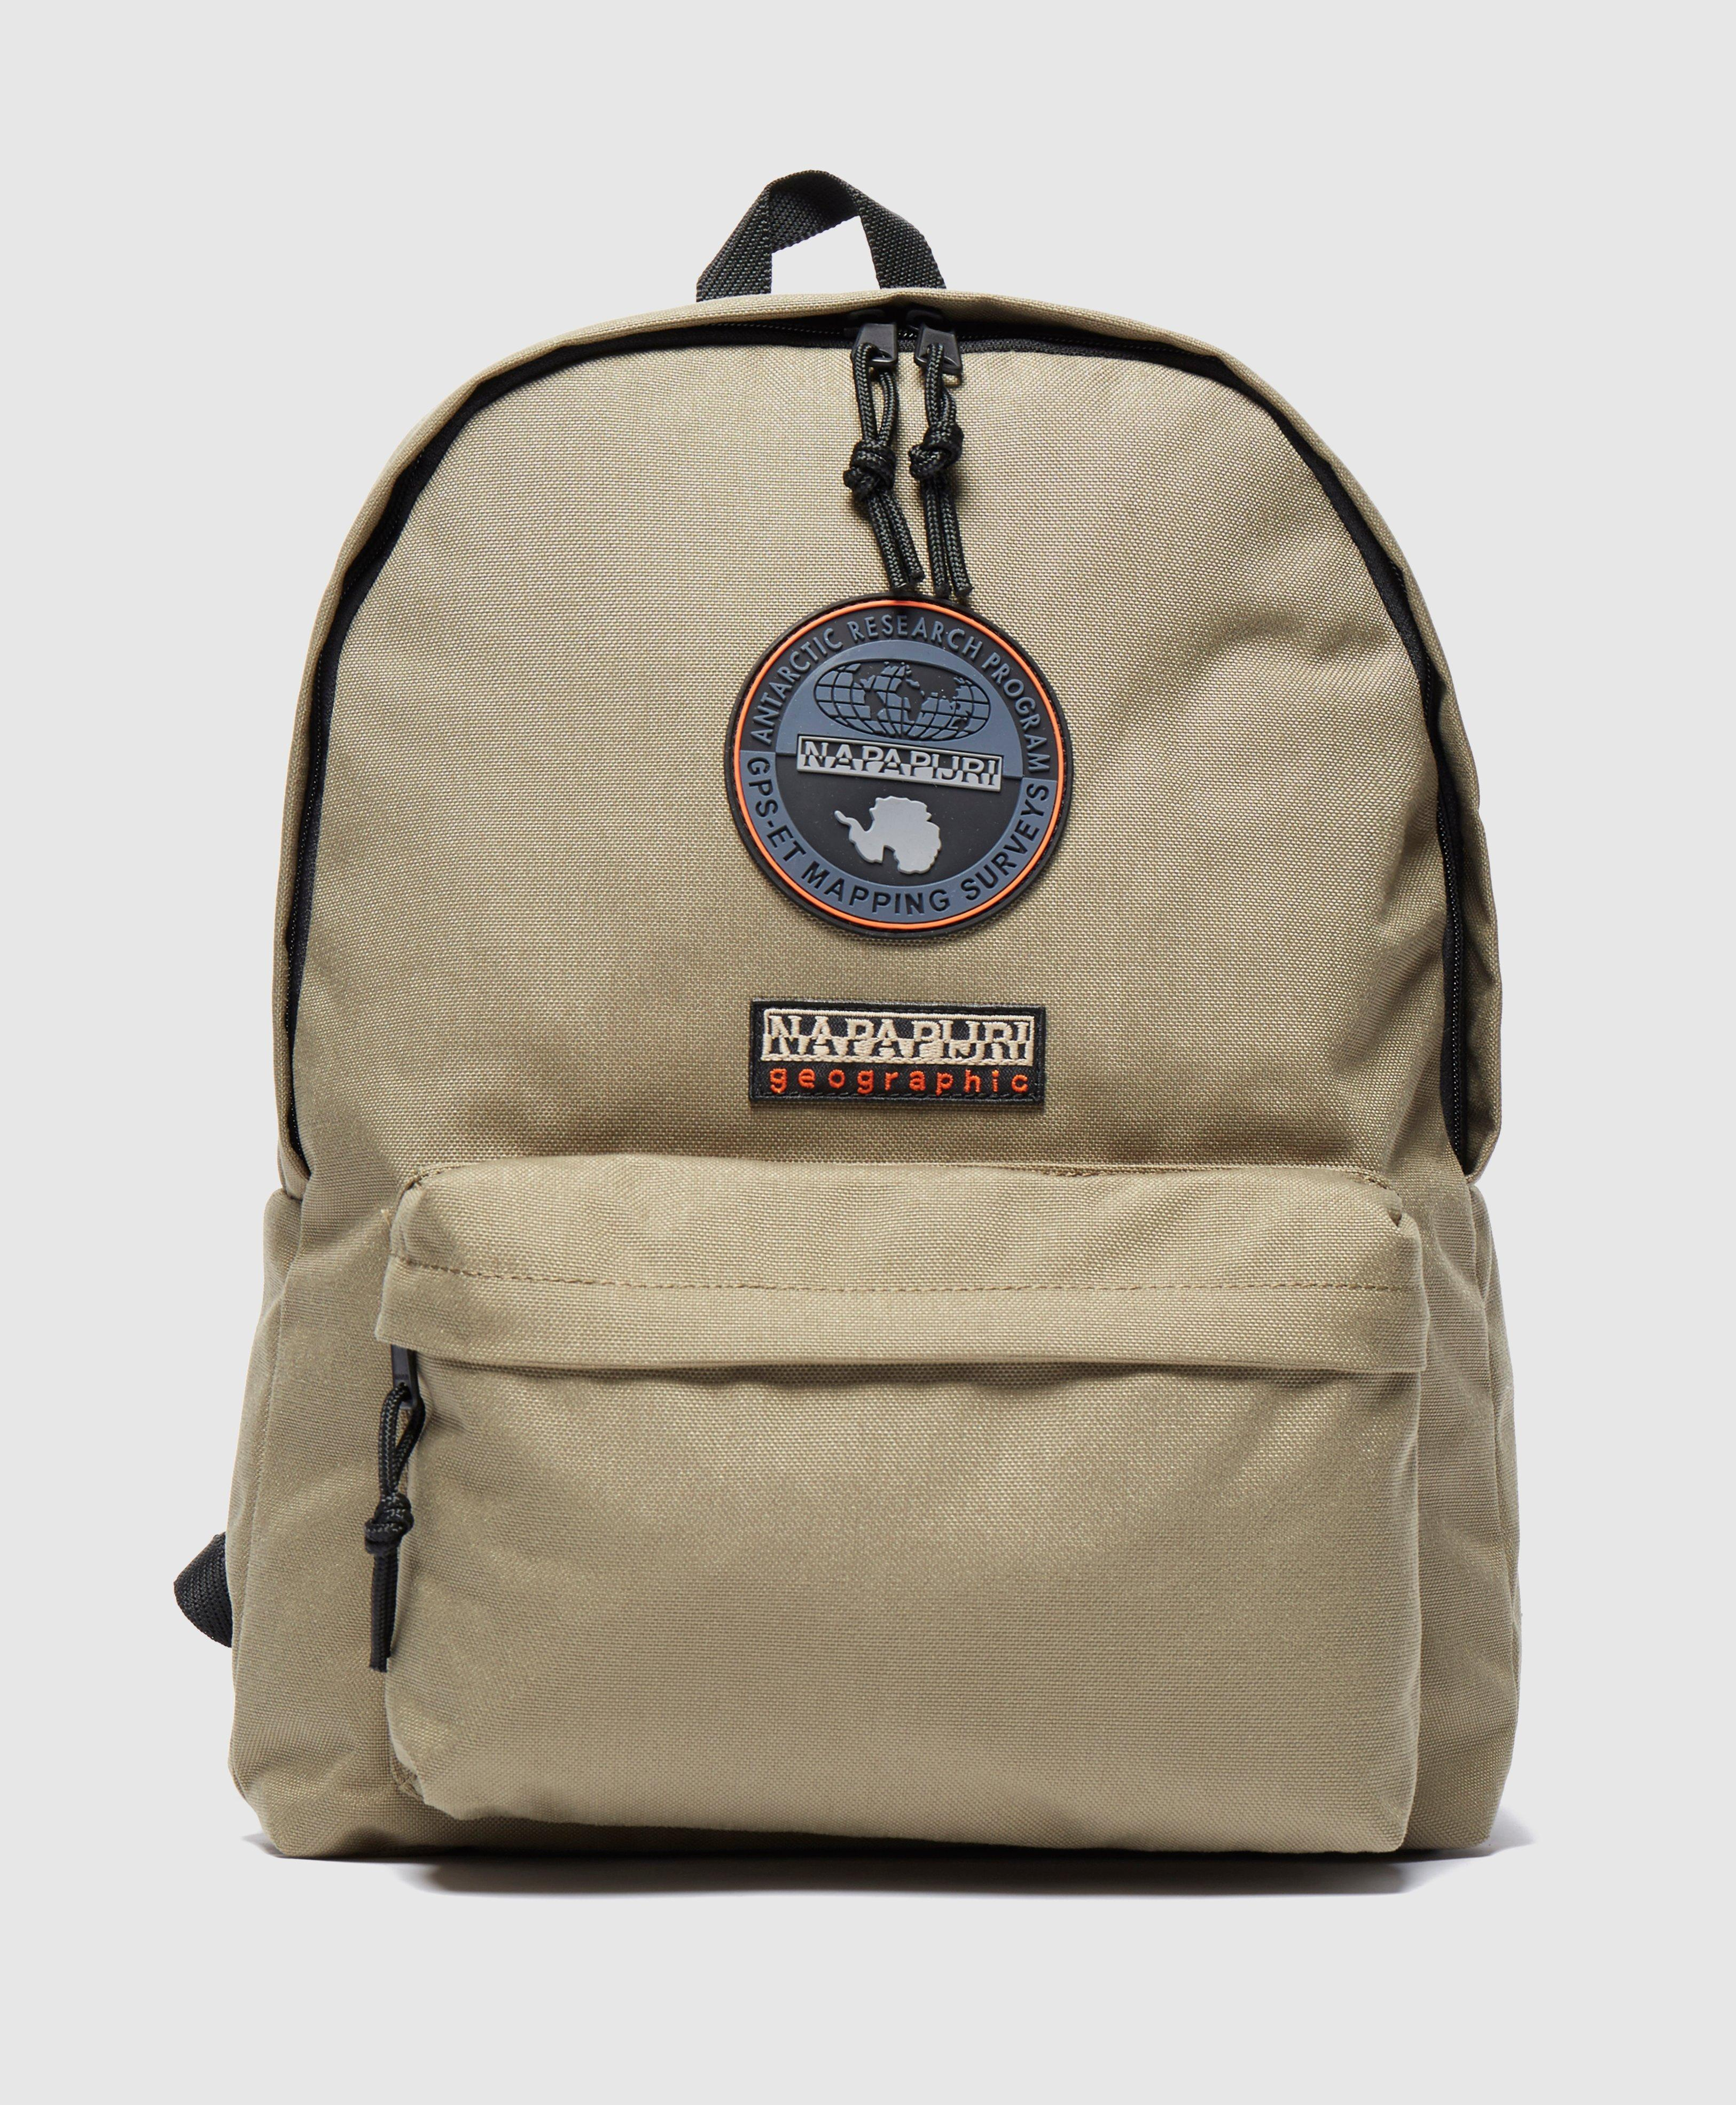 Napapijri - Multicolor Voyage Backpack for Men - Lyst. View fullscreen